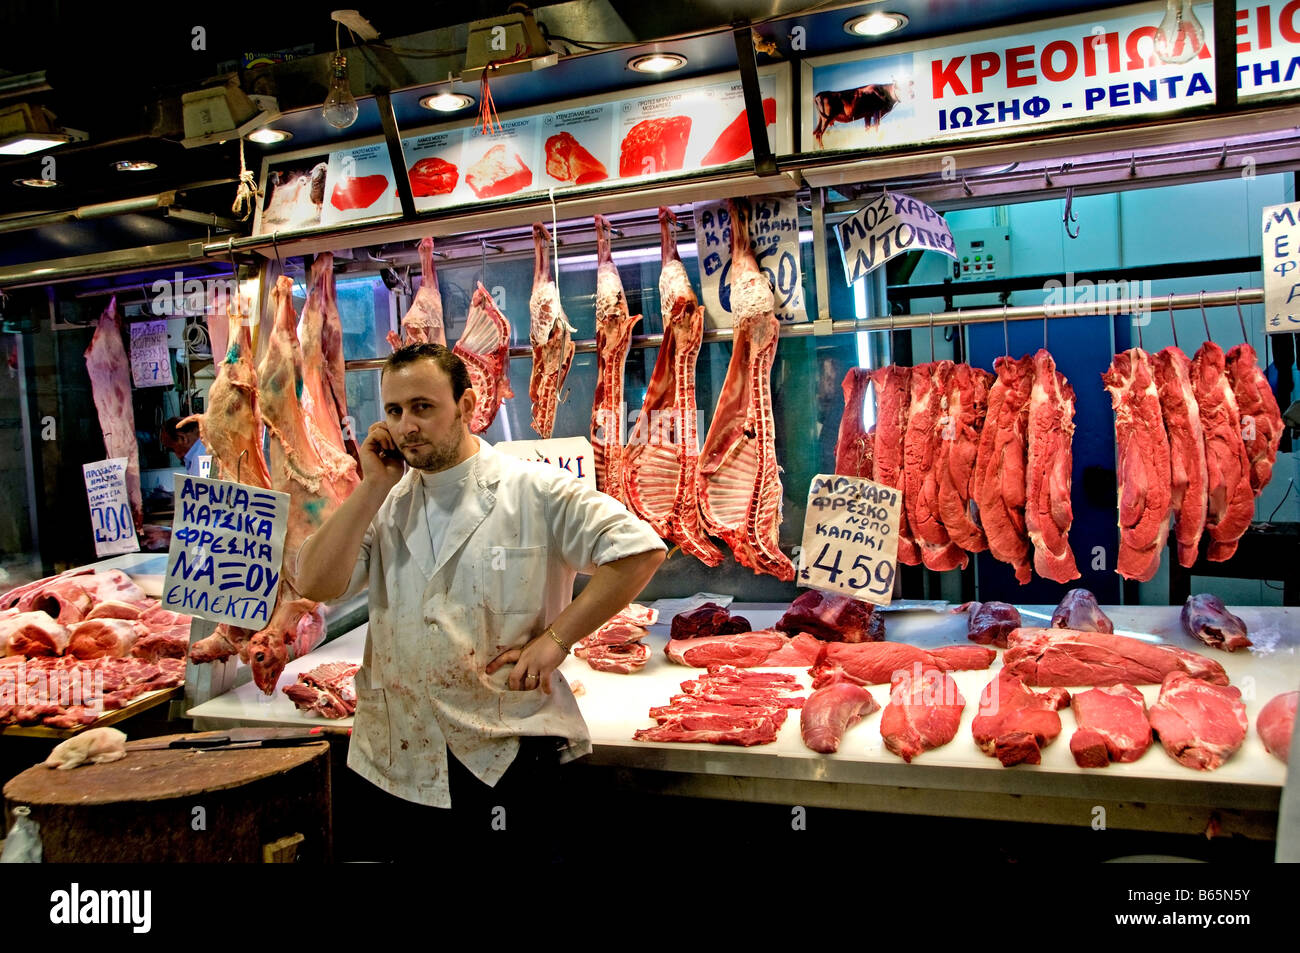 meat market stock images - photo #35